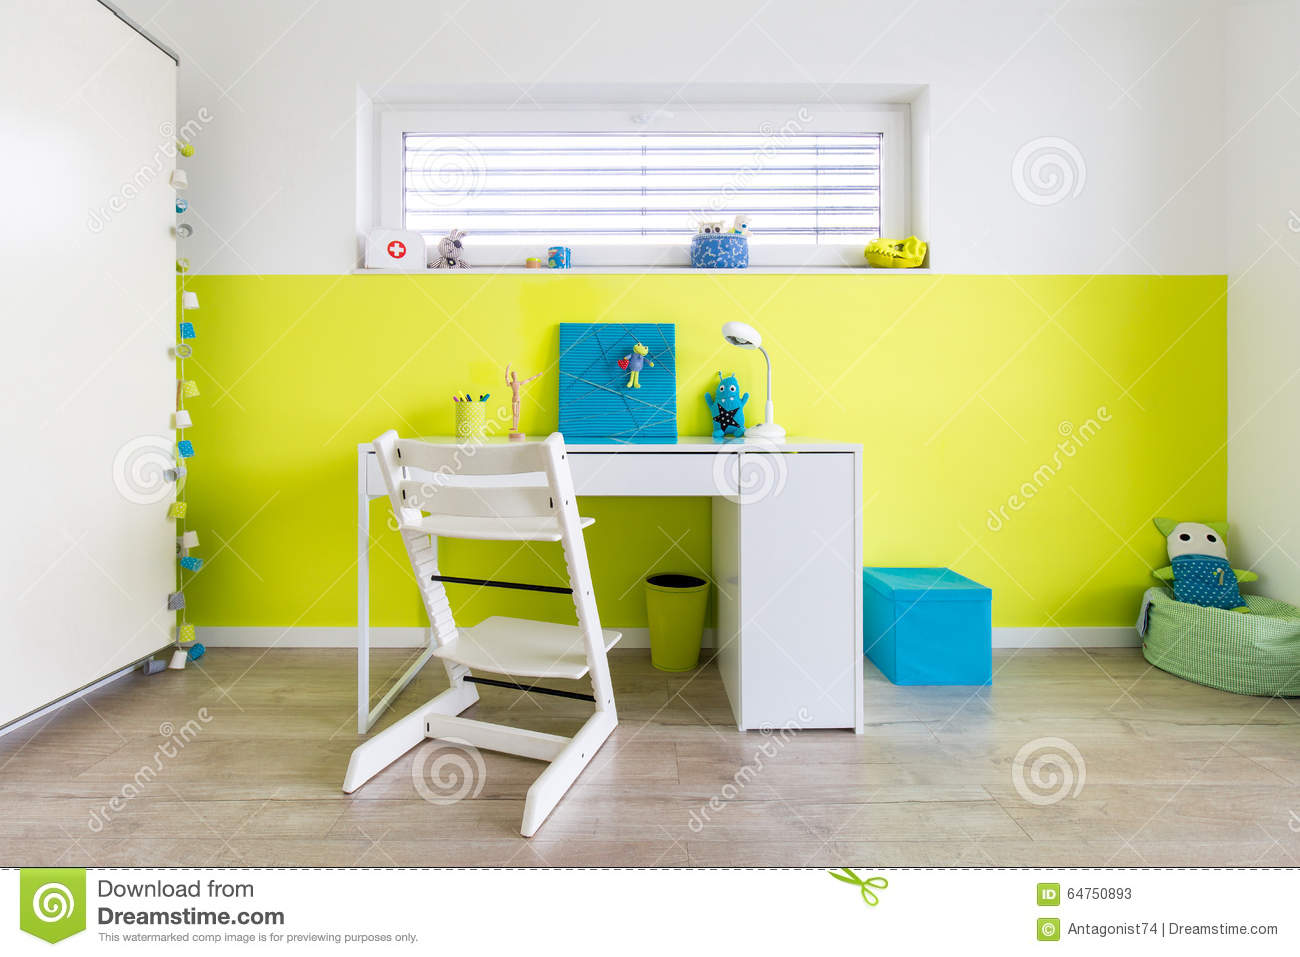 la salle de jeux des enfants avec le bureau photo stock. Black Bedroom Furniture Sets. Home Design Ideas